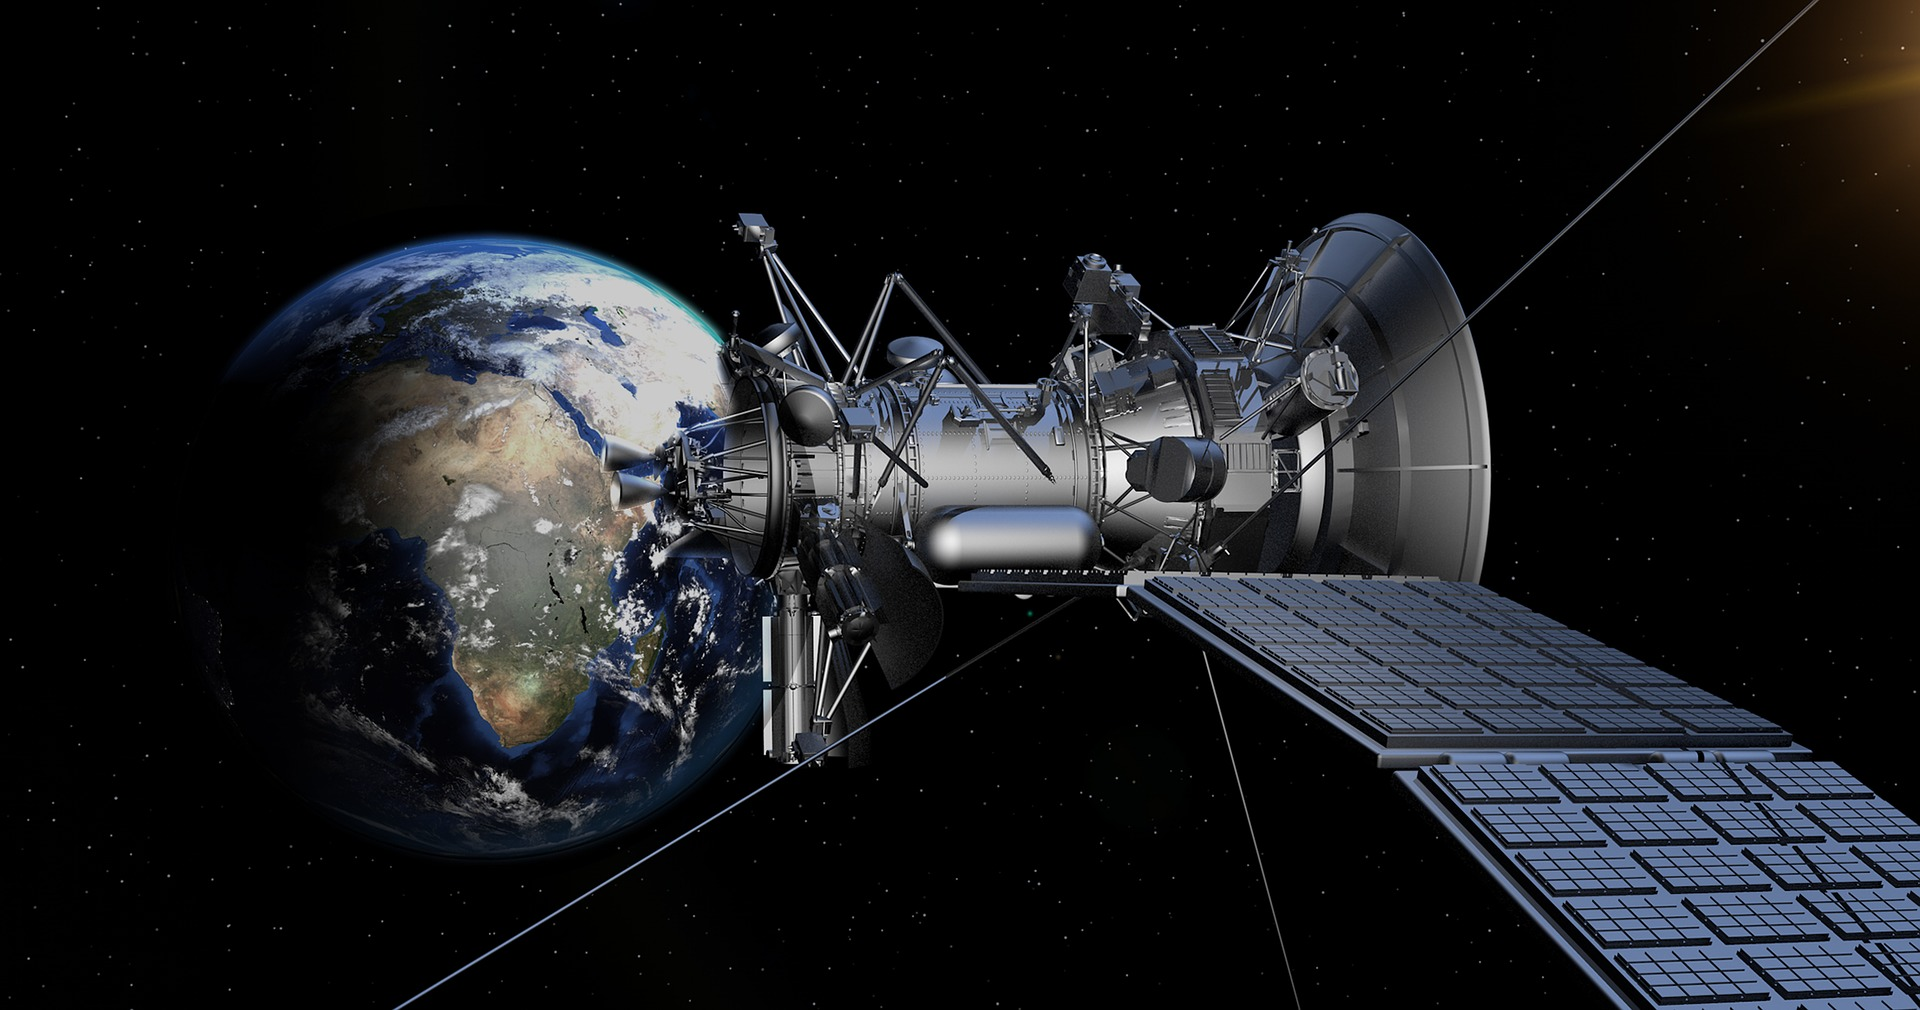 The UK Space Agency is offering young people expert advice for their ideas of how satellites could improve life on Earth - image courtesy of Pixabay.